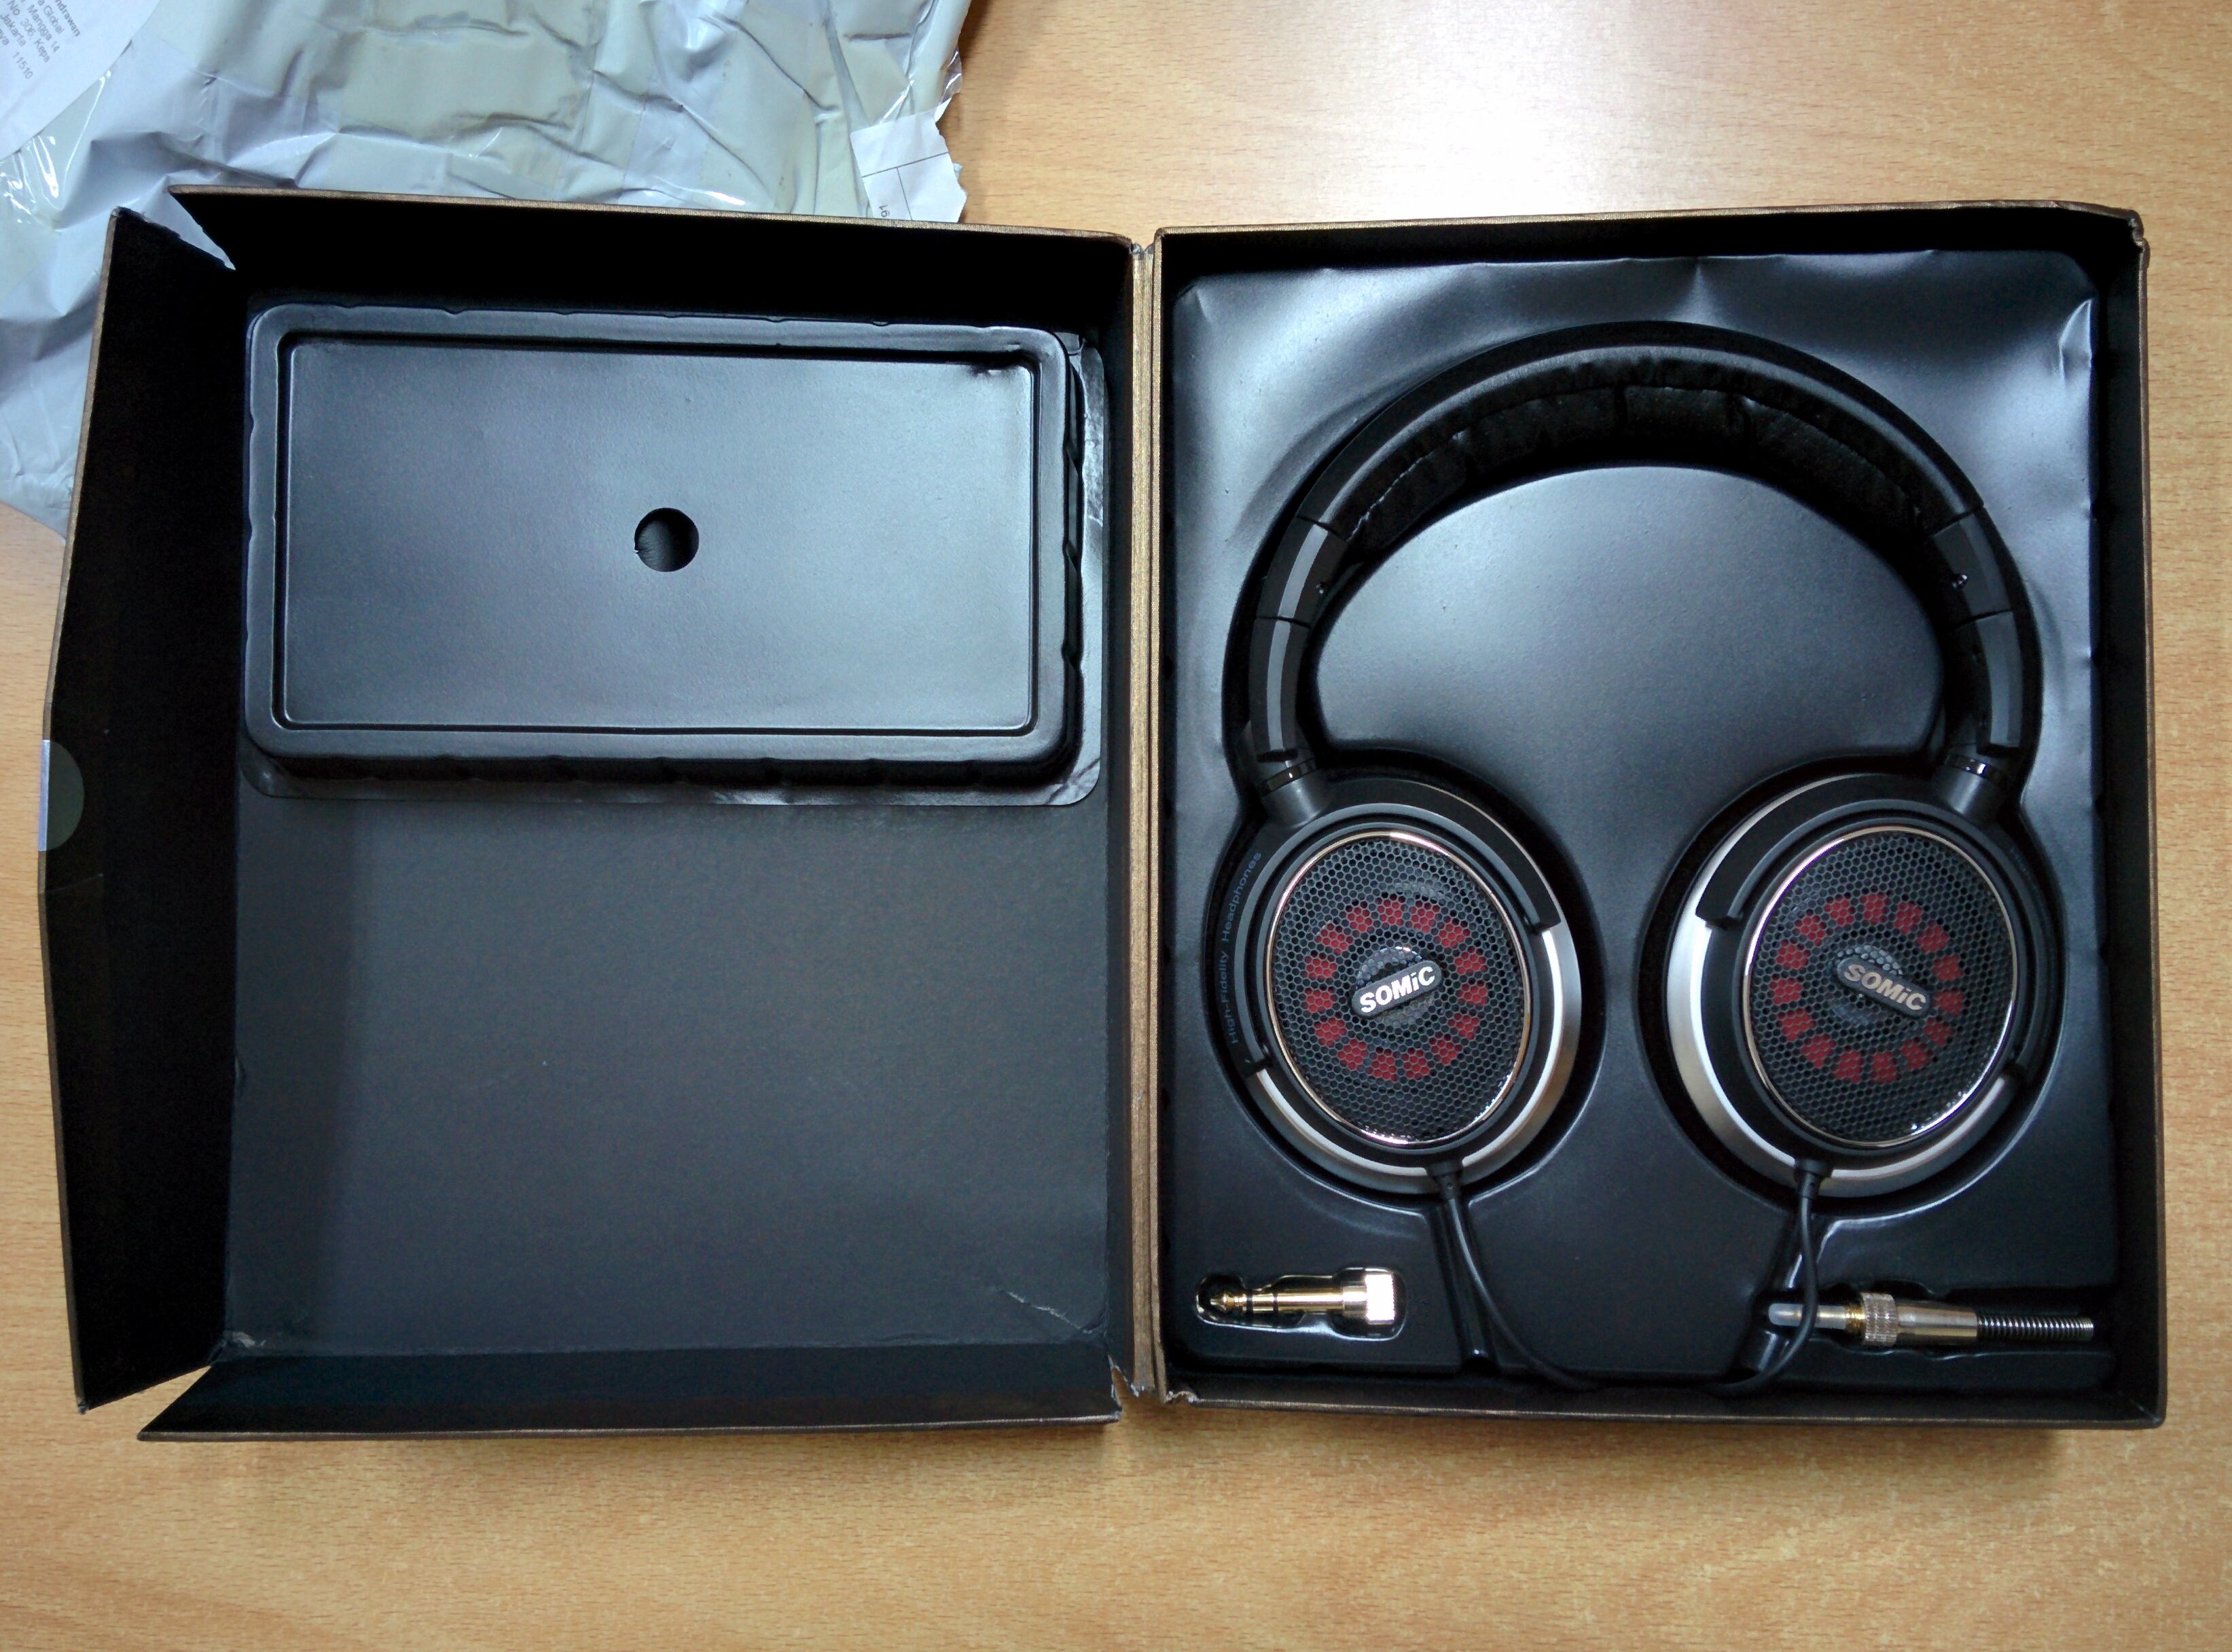 Somic V2 Headphone Review By Mark2410 Headphone Reviews And Discussion Head Fi Org